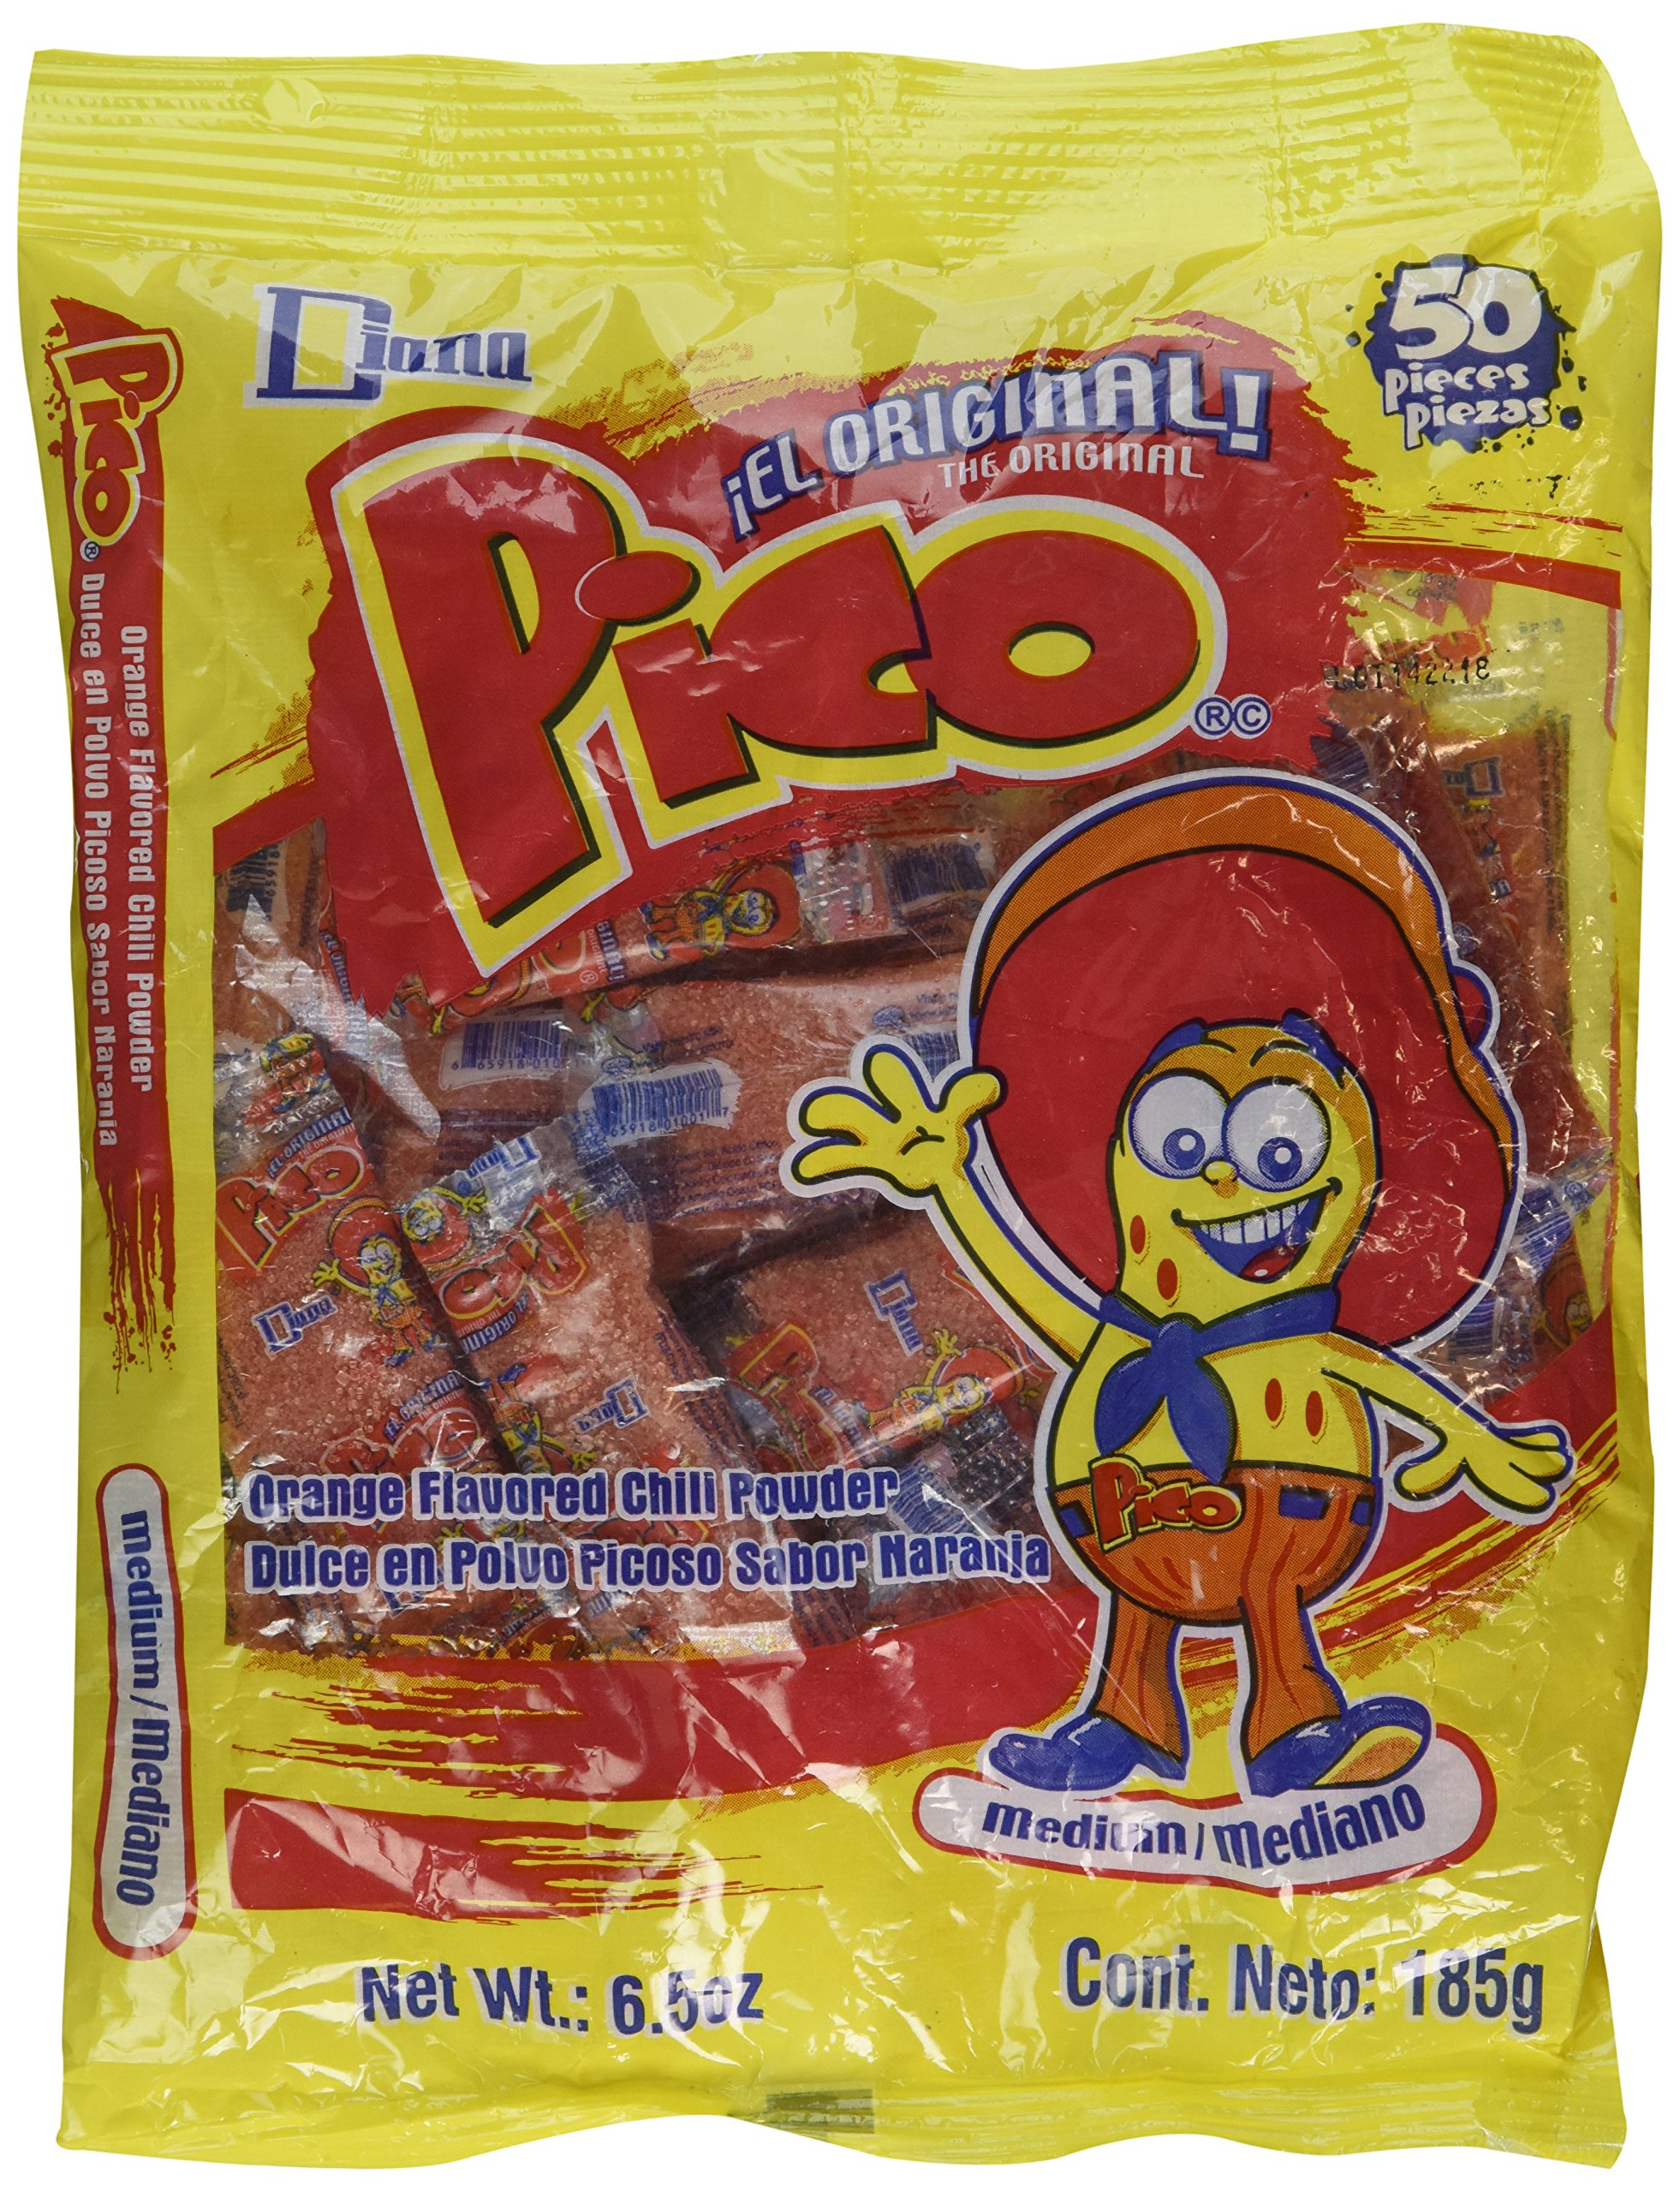 Pico Mediano, The Original Orange Flavor Hot Candy Powder, 50-Count